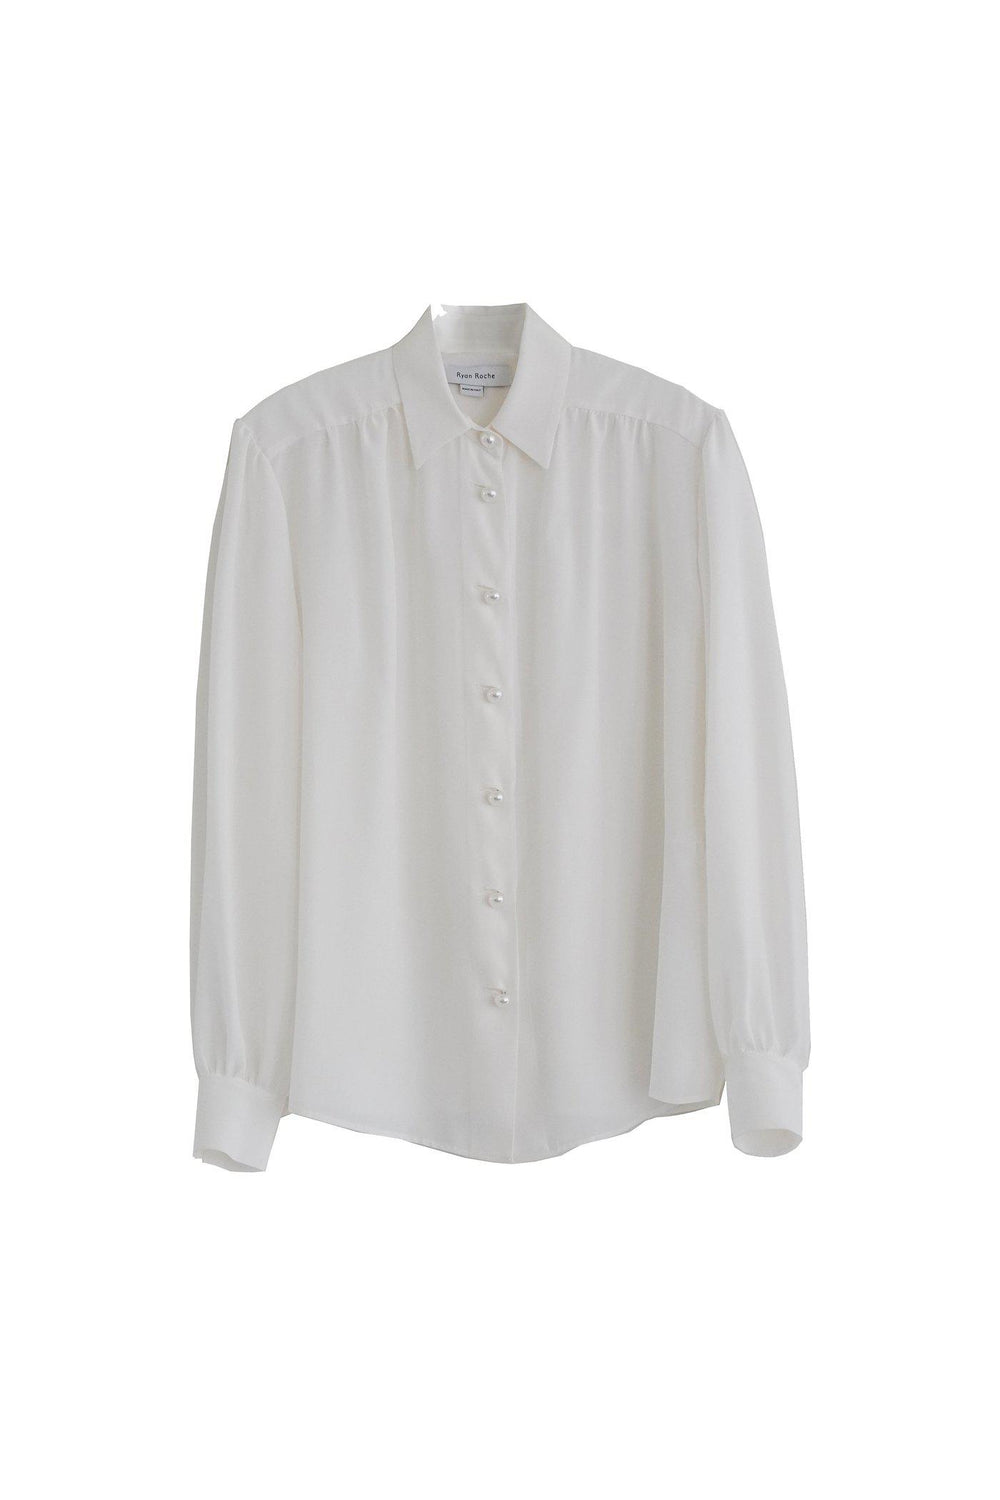 RYAN ROCHE Silk blouse with puff sleeve and pearl buttons in snow white